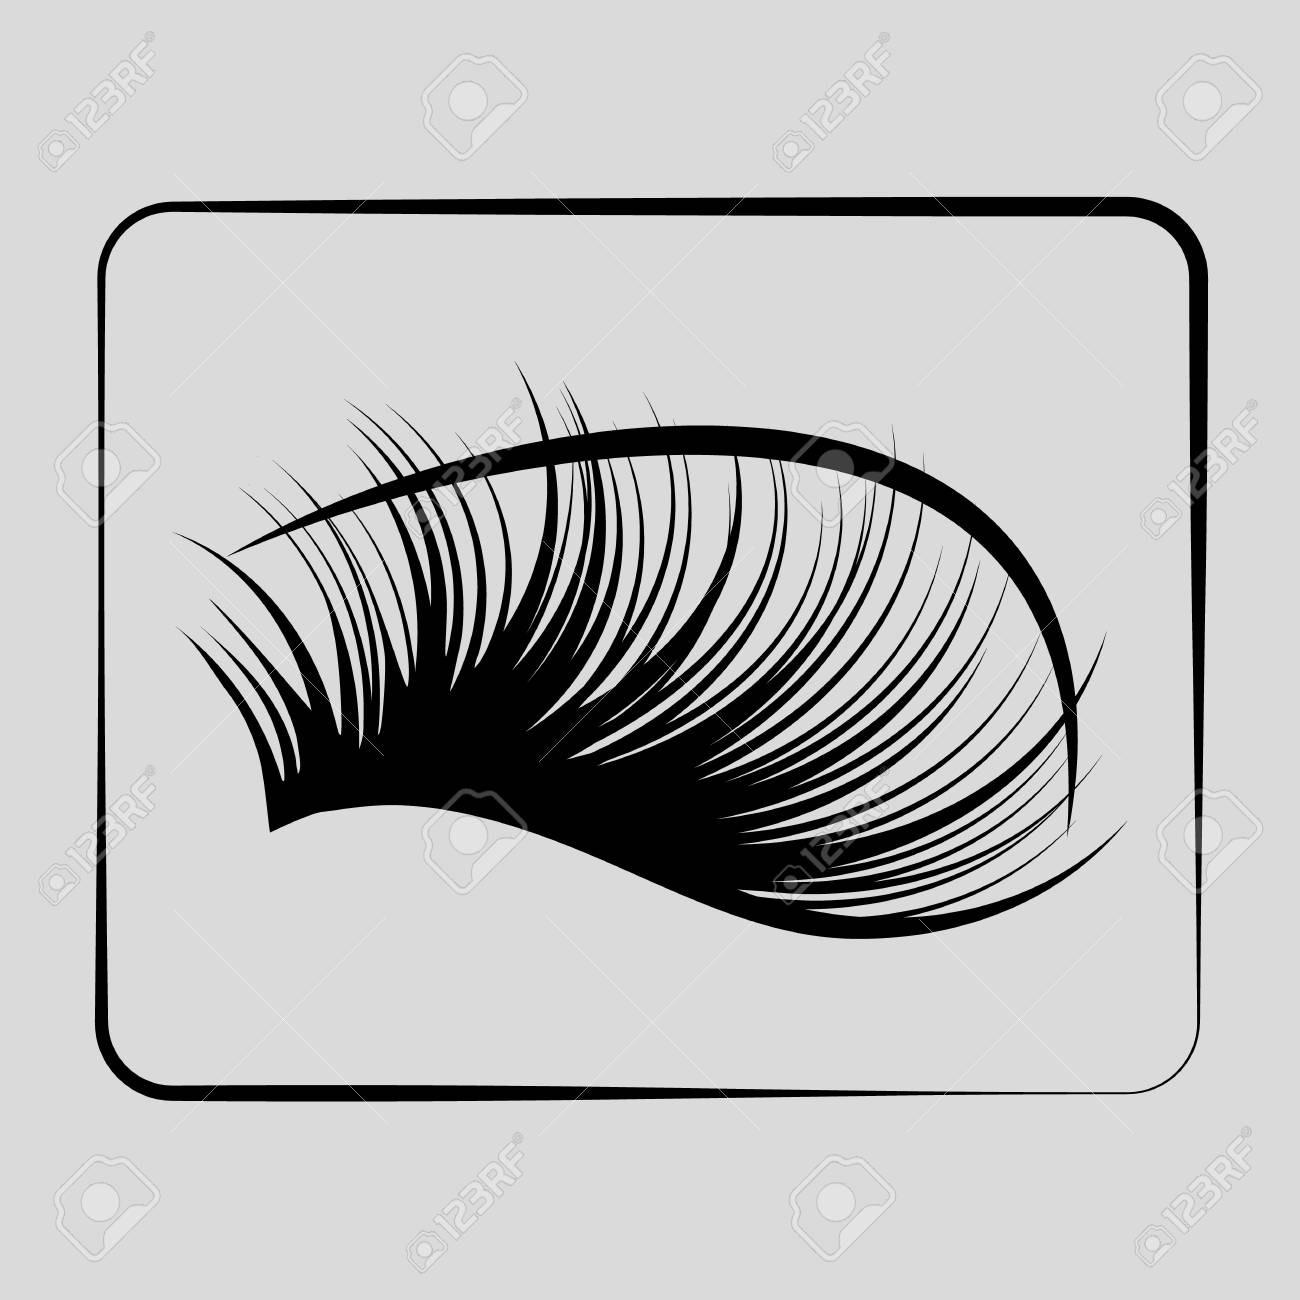 eyelashes icon on a gray background In a black rectangle - 80838226